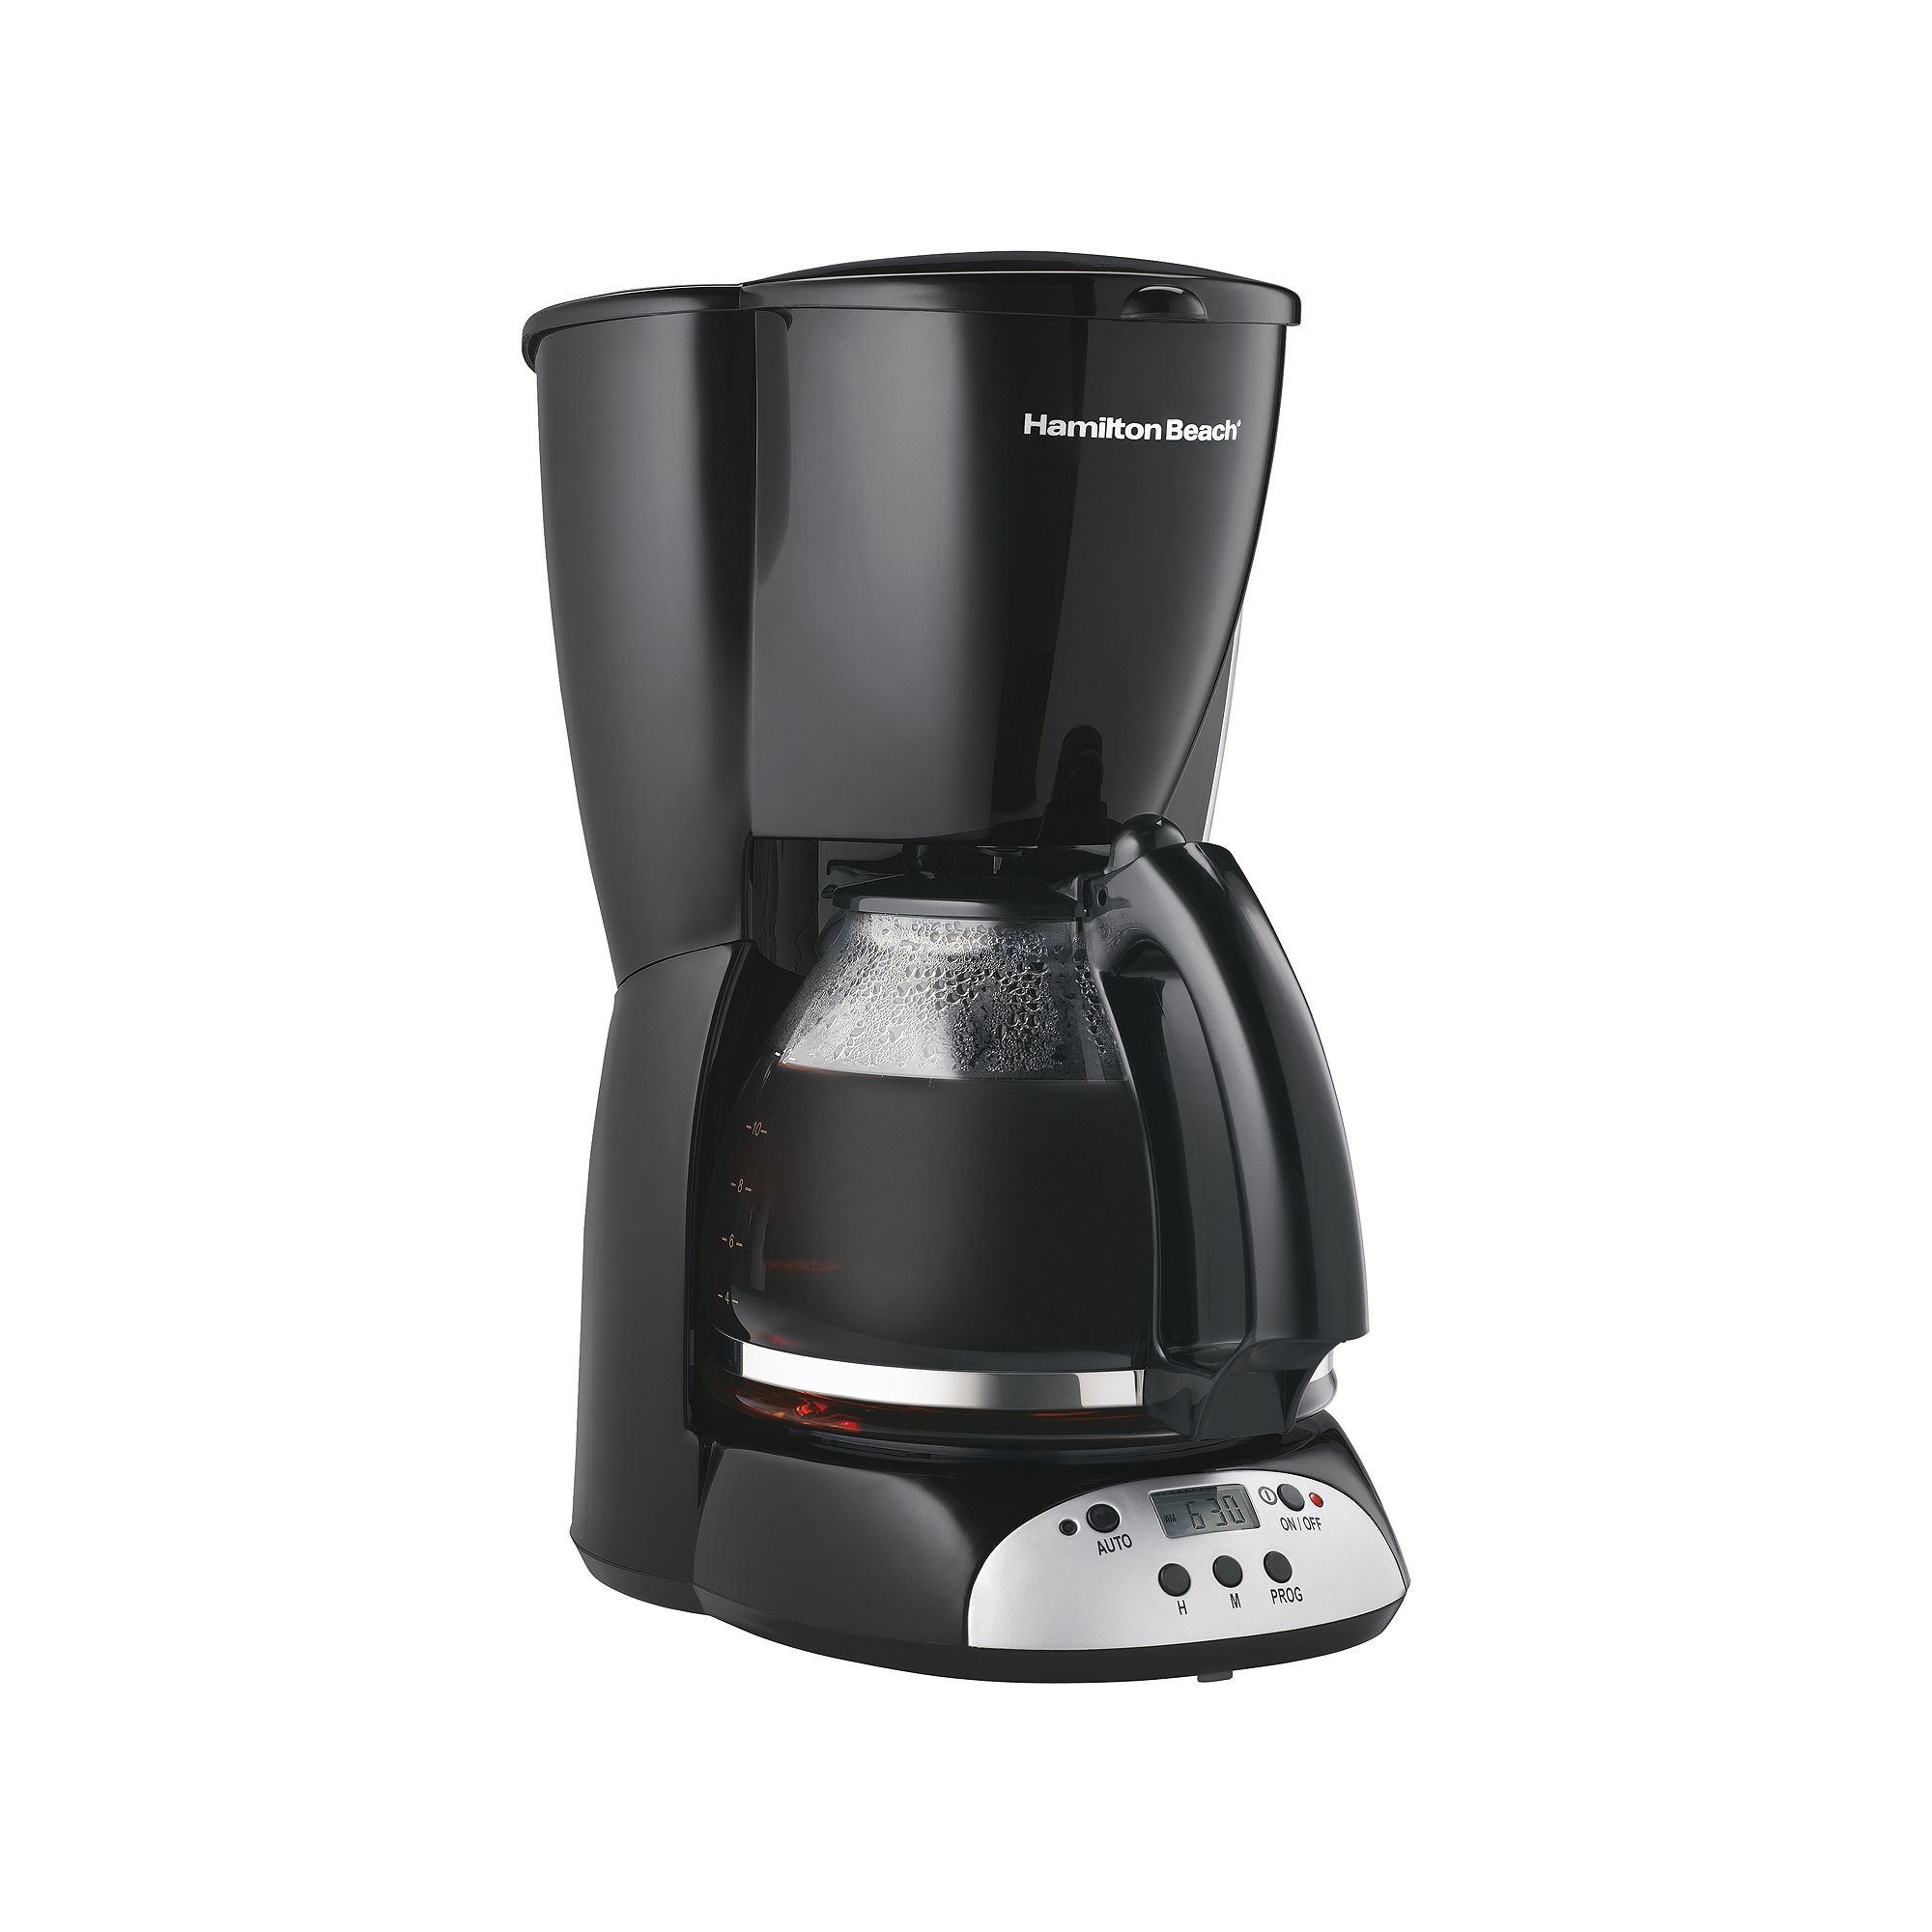 Programmable Coffee Maker Cone Filter : Hamilton beach 47686 brewstation plus 12 cup coffee maker with three modes - Find it at Shopwiki